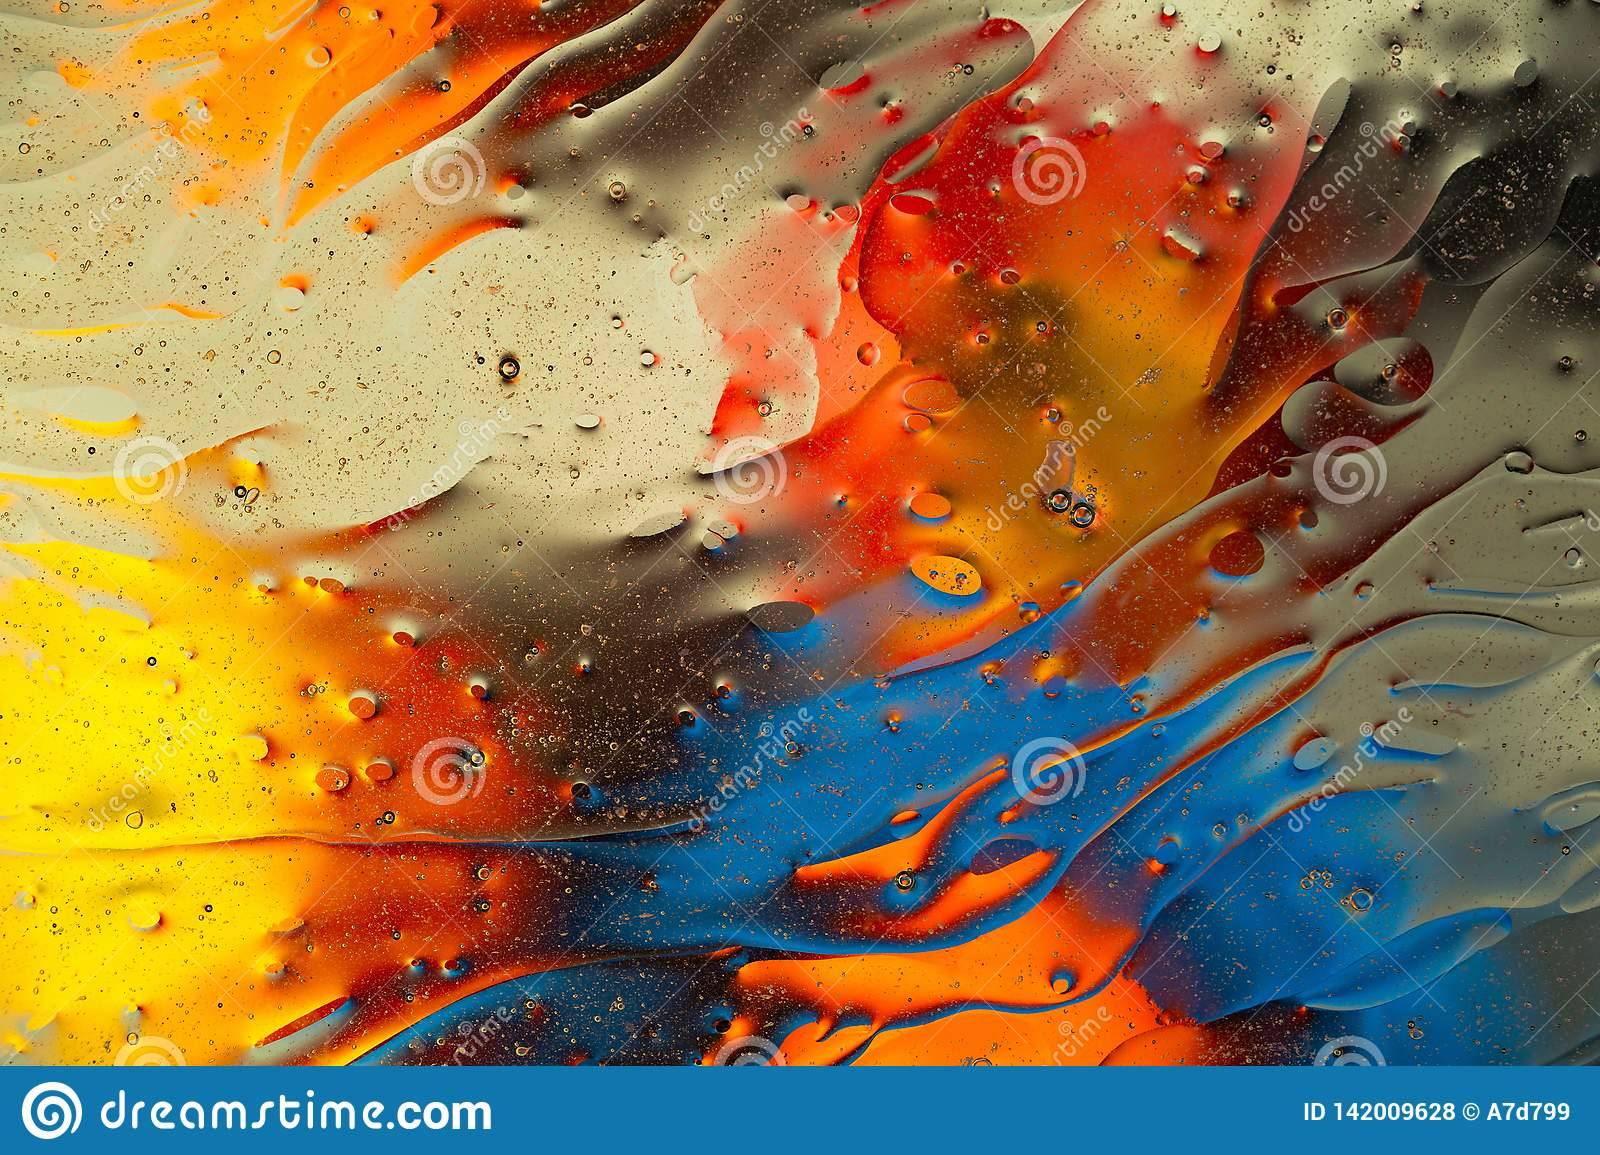 Red, blue, orange,black, yellow colorful abstract design, texture. Beautiful backgrounds.